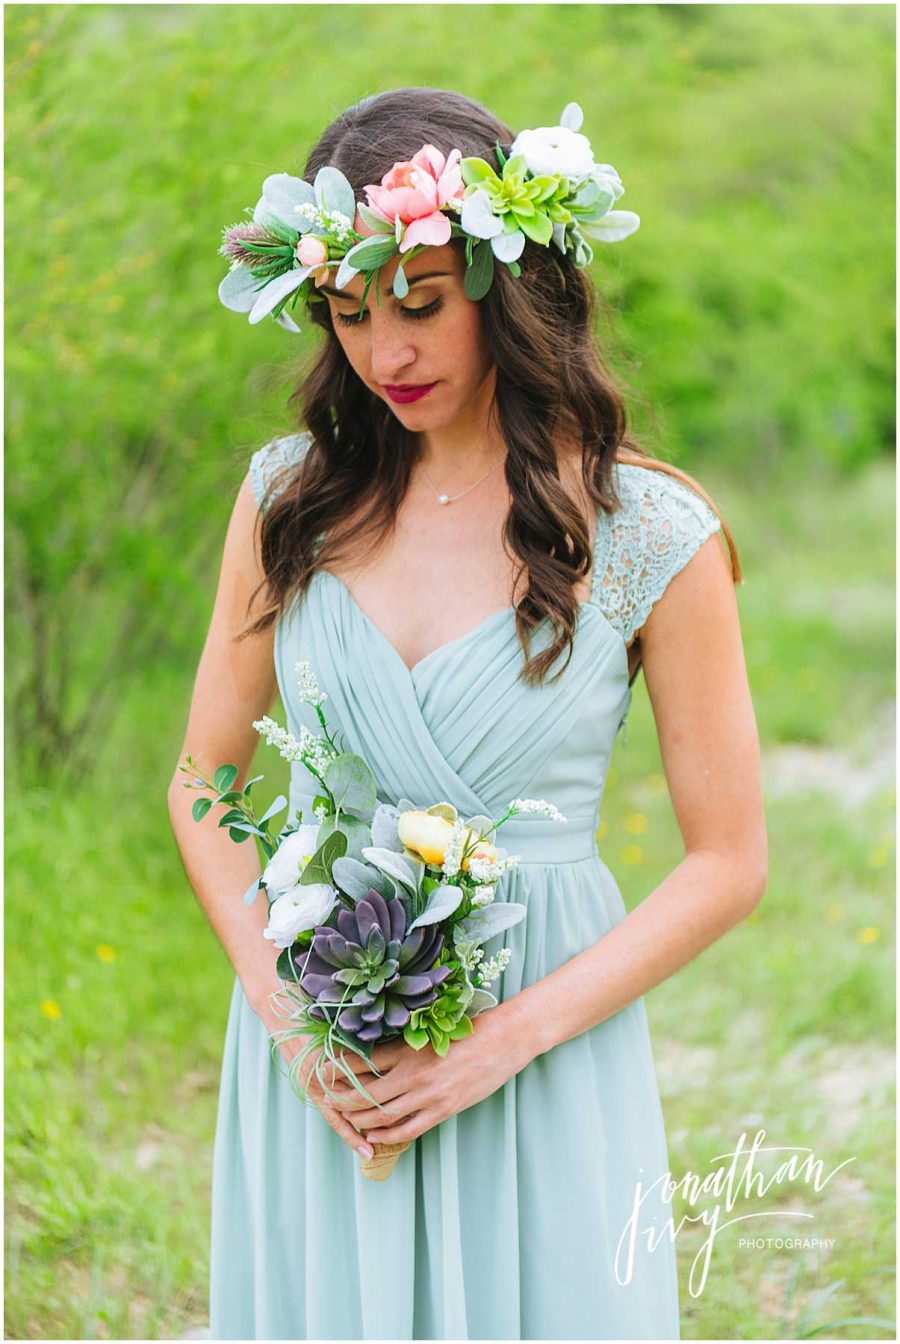 Boho Bridesmaid Floral Crown and Pastel Boho Bouquets